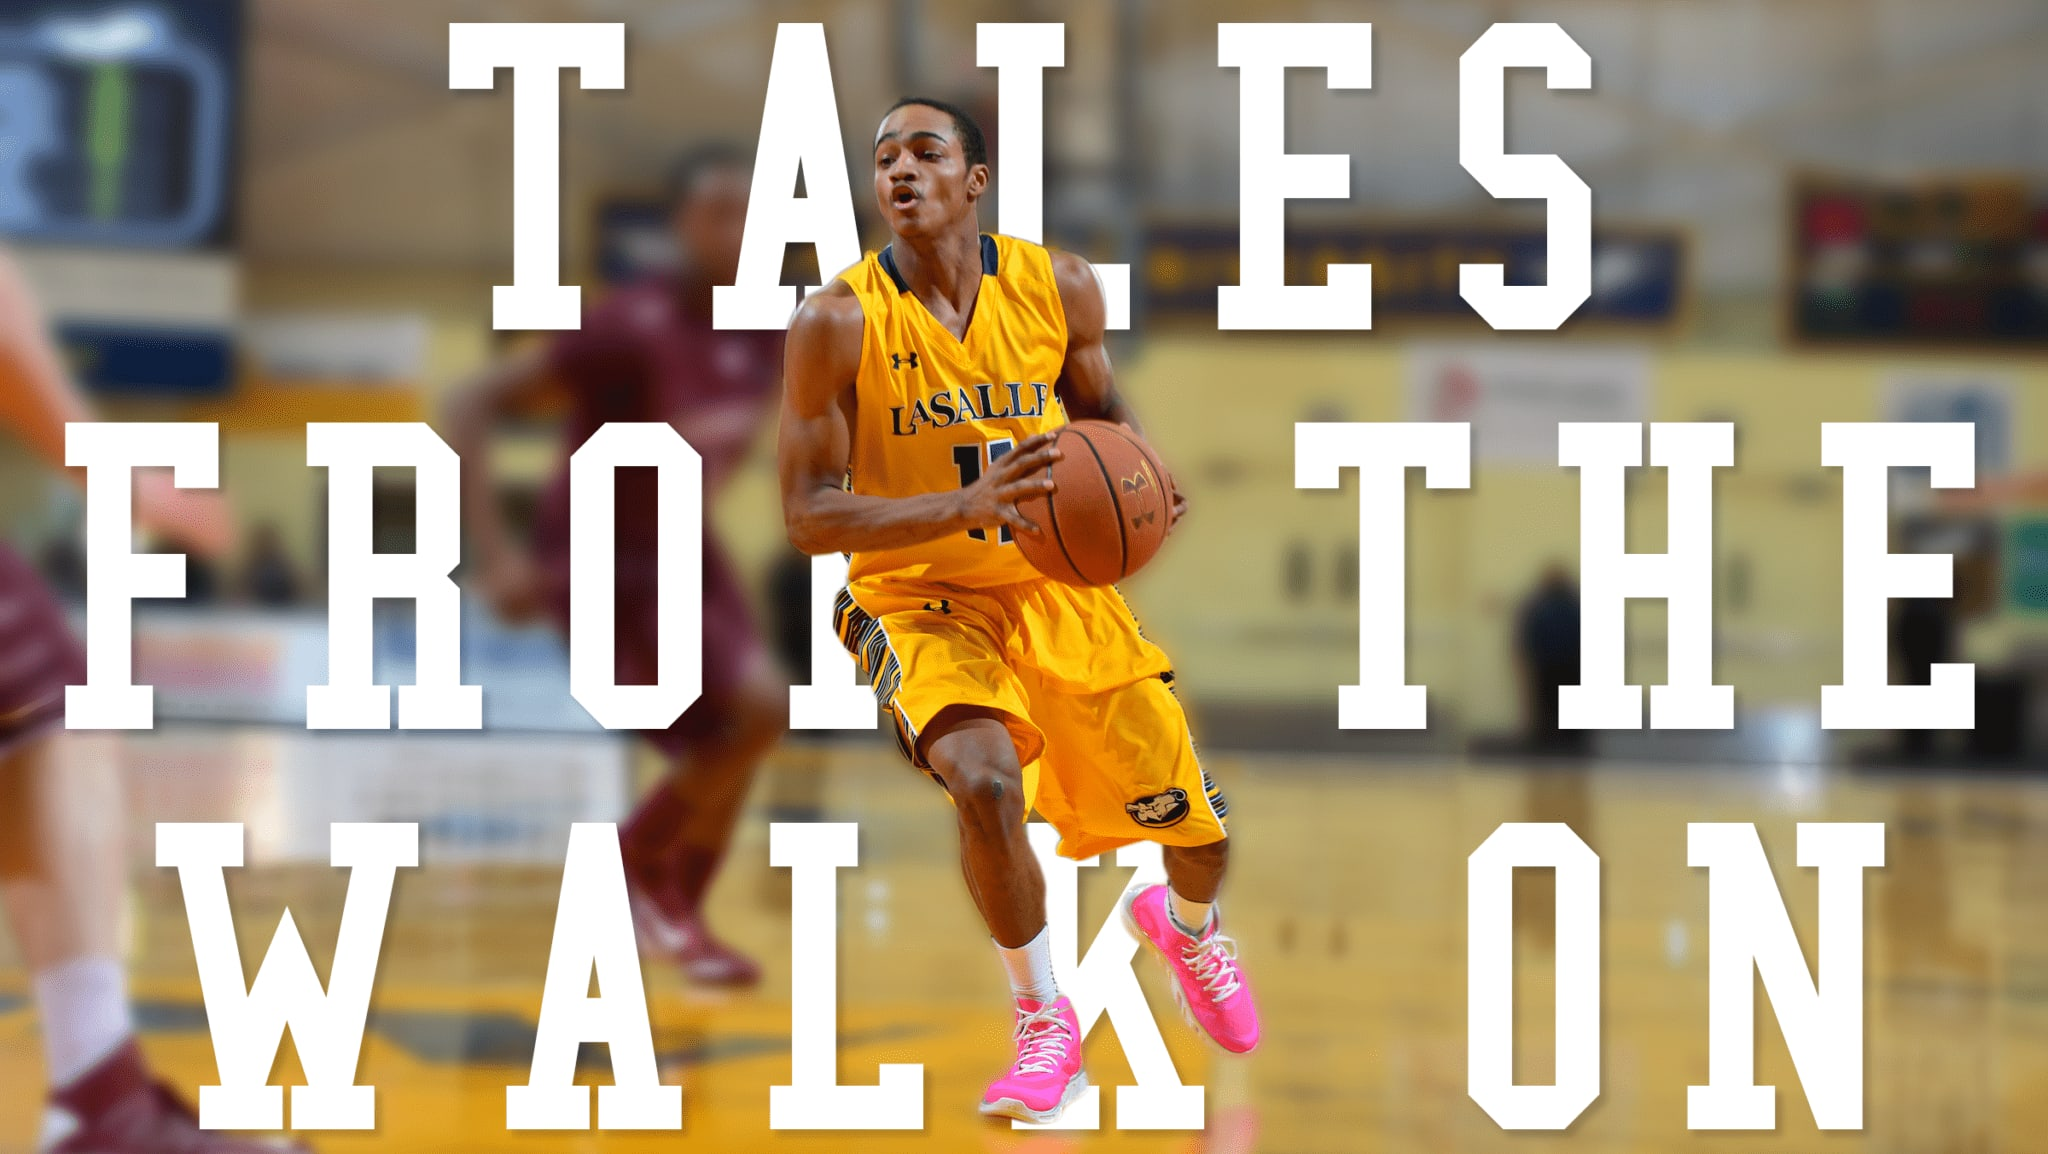 OJ Lewis 'Walked On' to the 2012 Sweet 16 with La Salle